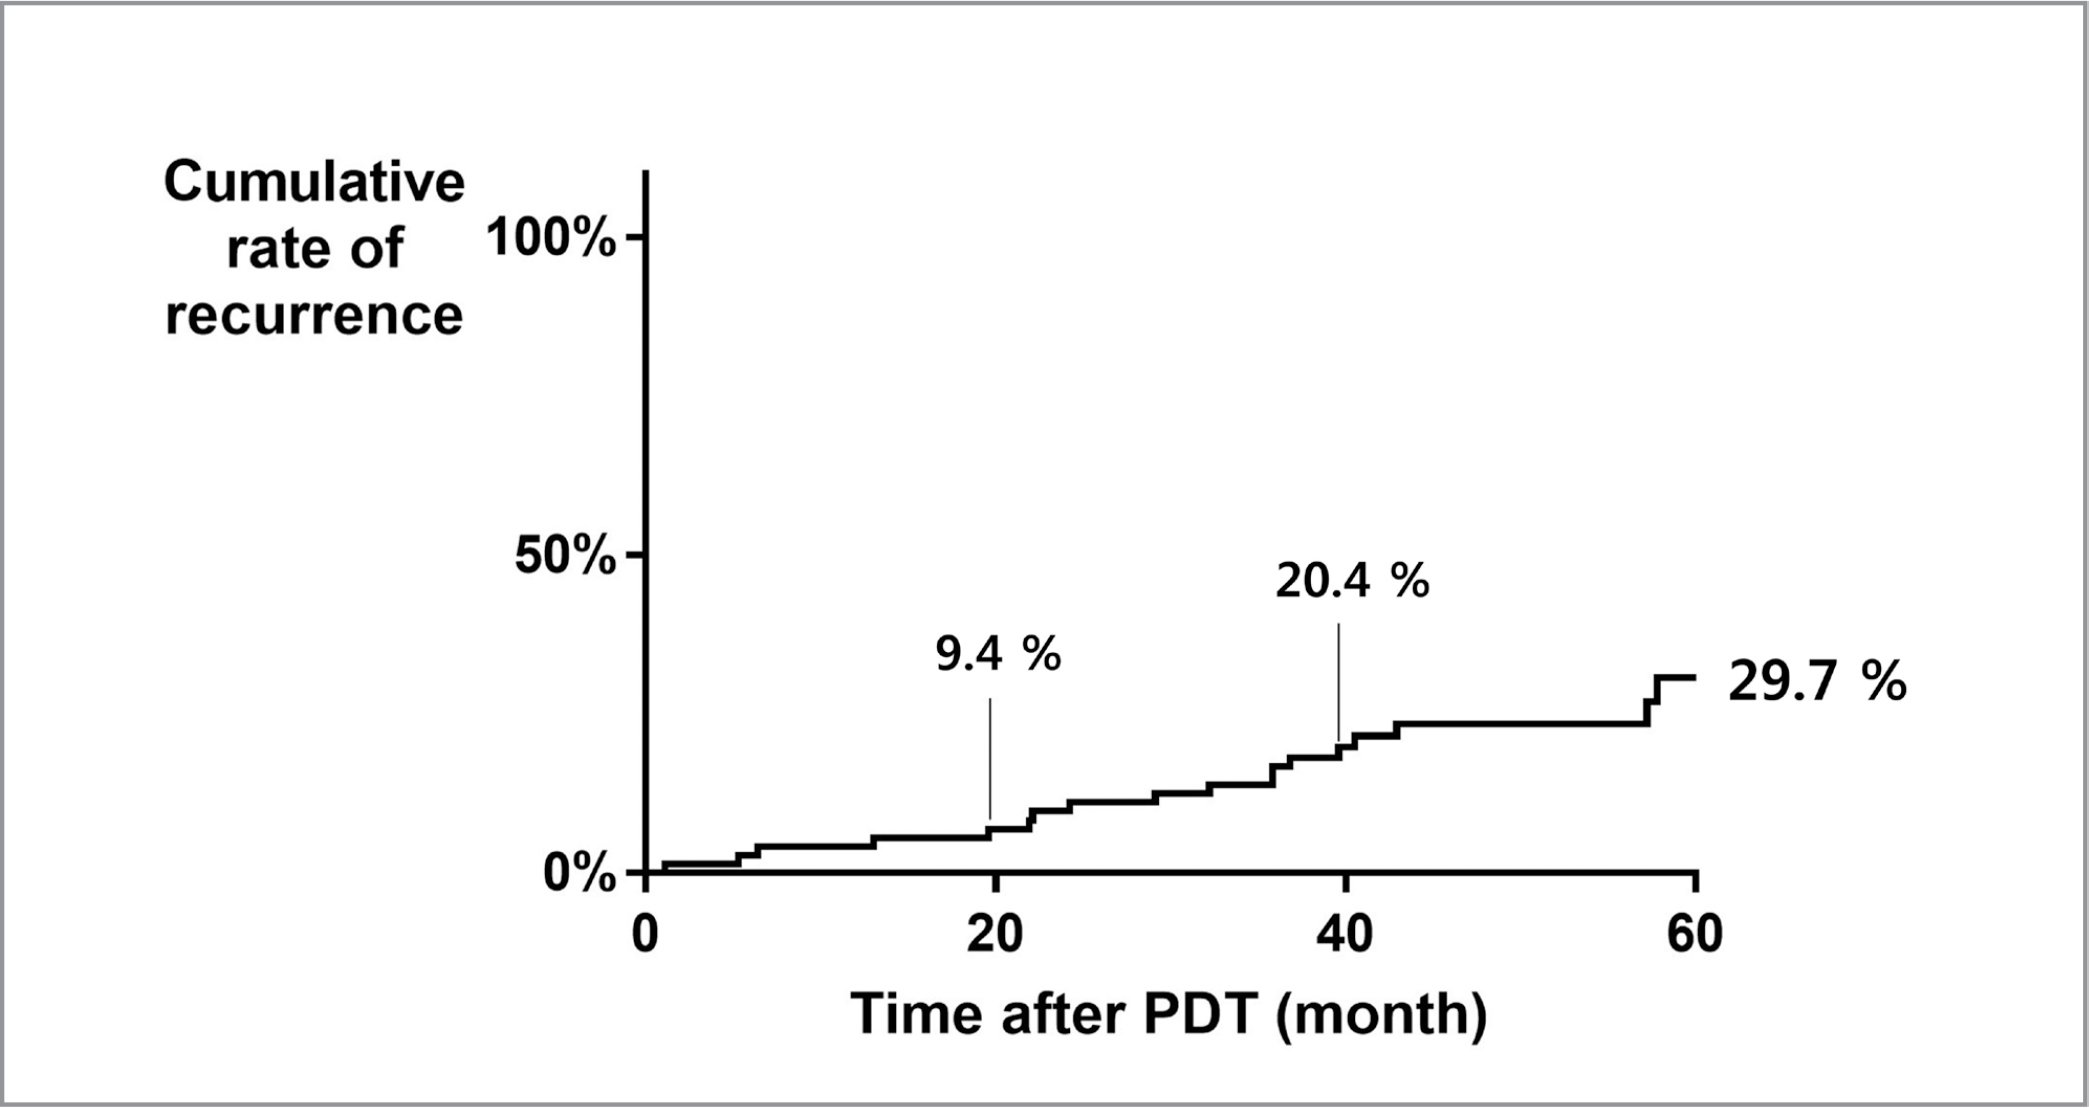 Kaplan-Meyer survival curve for cumulative rate of recurrence after photodynamic therapy (PDT) for chronic central serous chorioretinopathy.